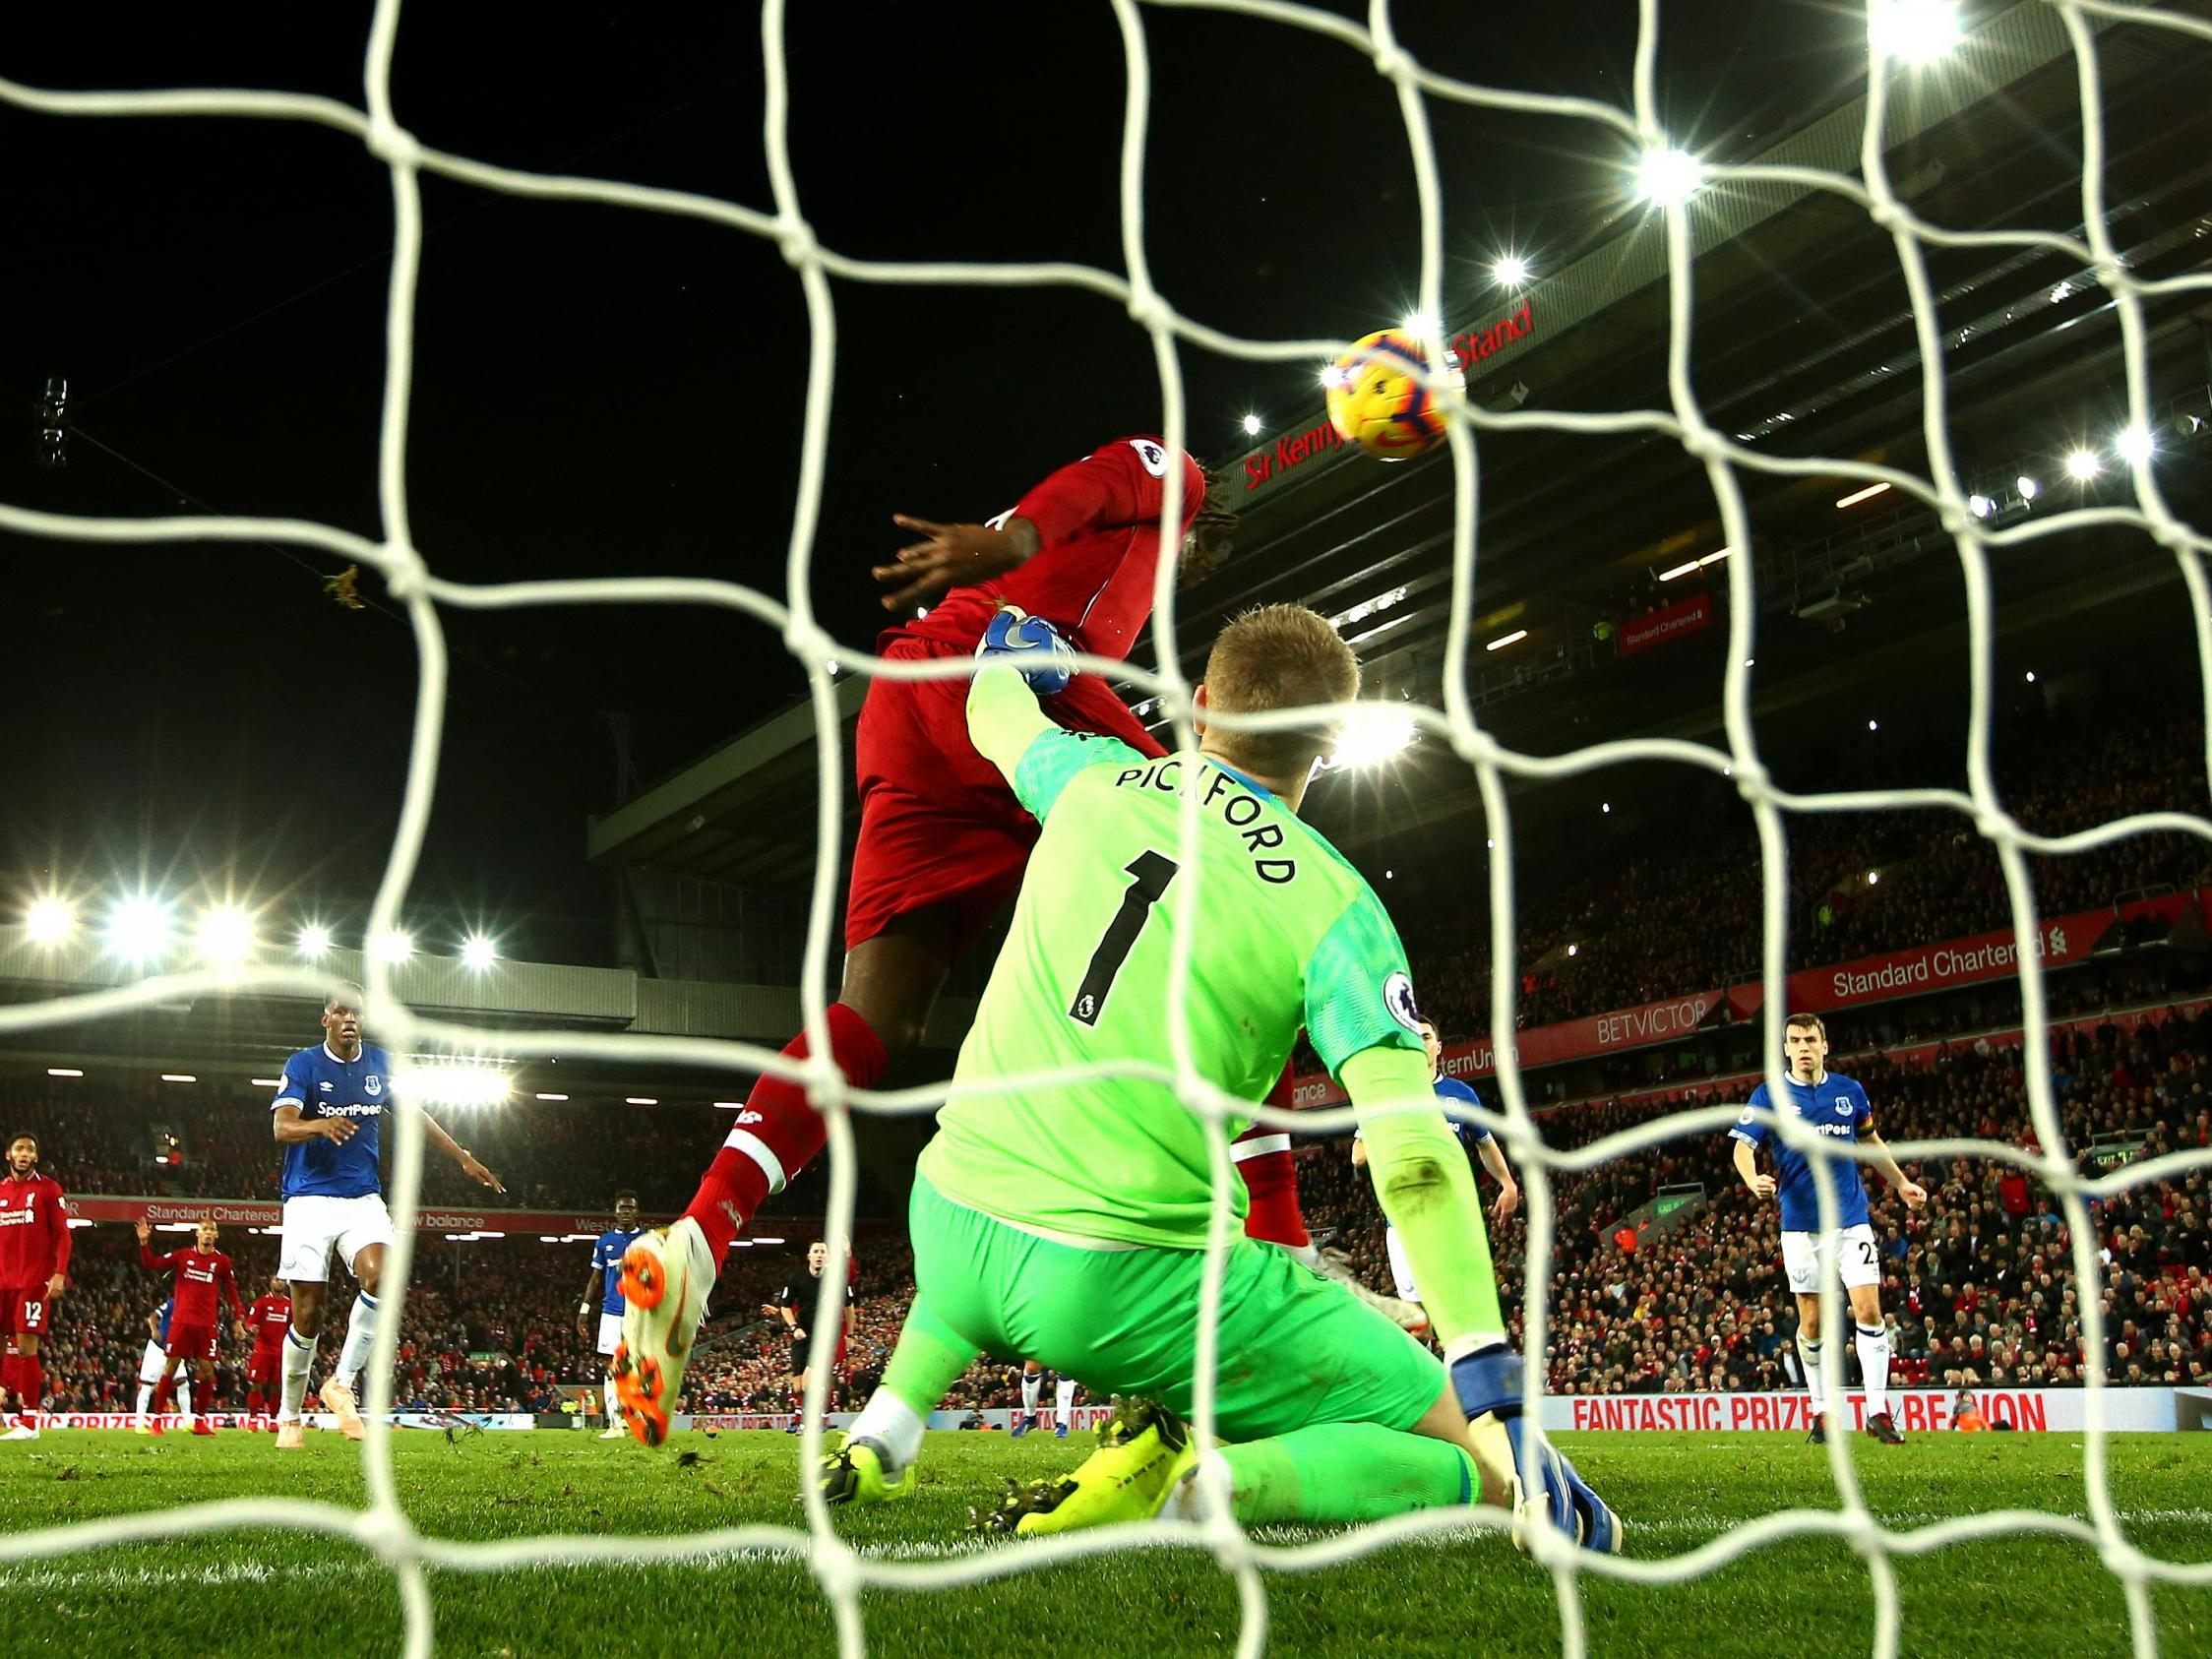 Liverpool Vs Everton The Anatomy Of A Freak Derby Winning Goal As Seen Through The Eyes Of Its Protagonists The Independent The Independent